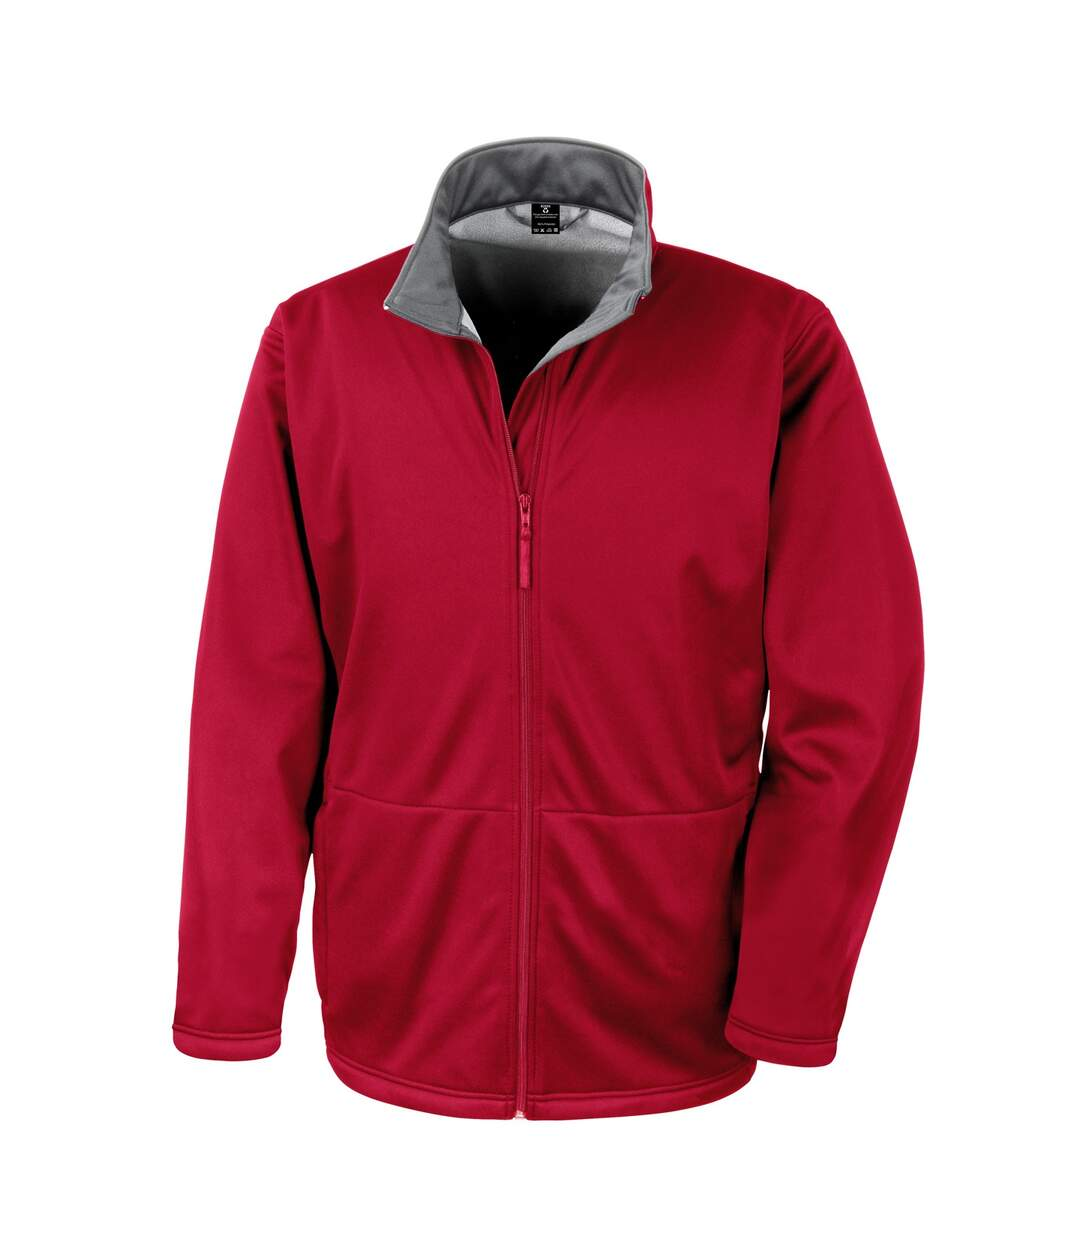 Result Core Mens Soft Shell 3 Layer Waterproof Jacket (Red) - UTBC904